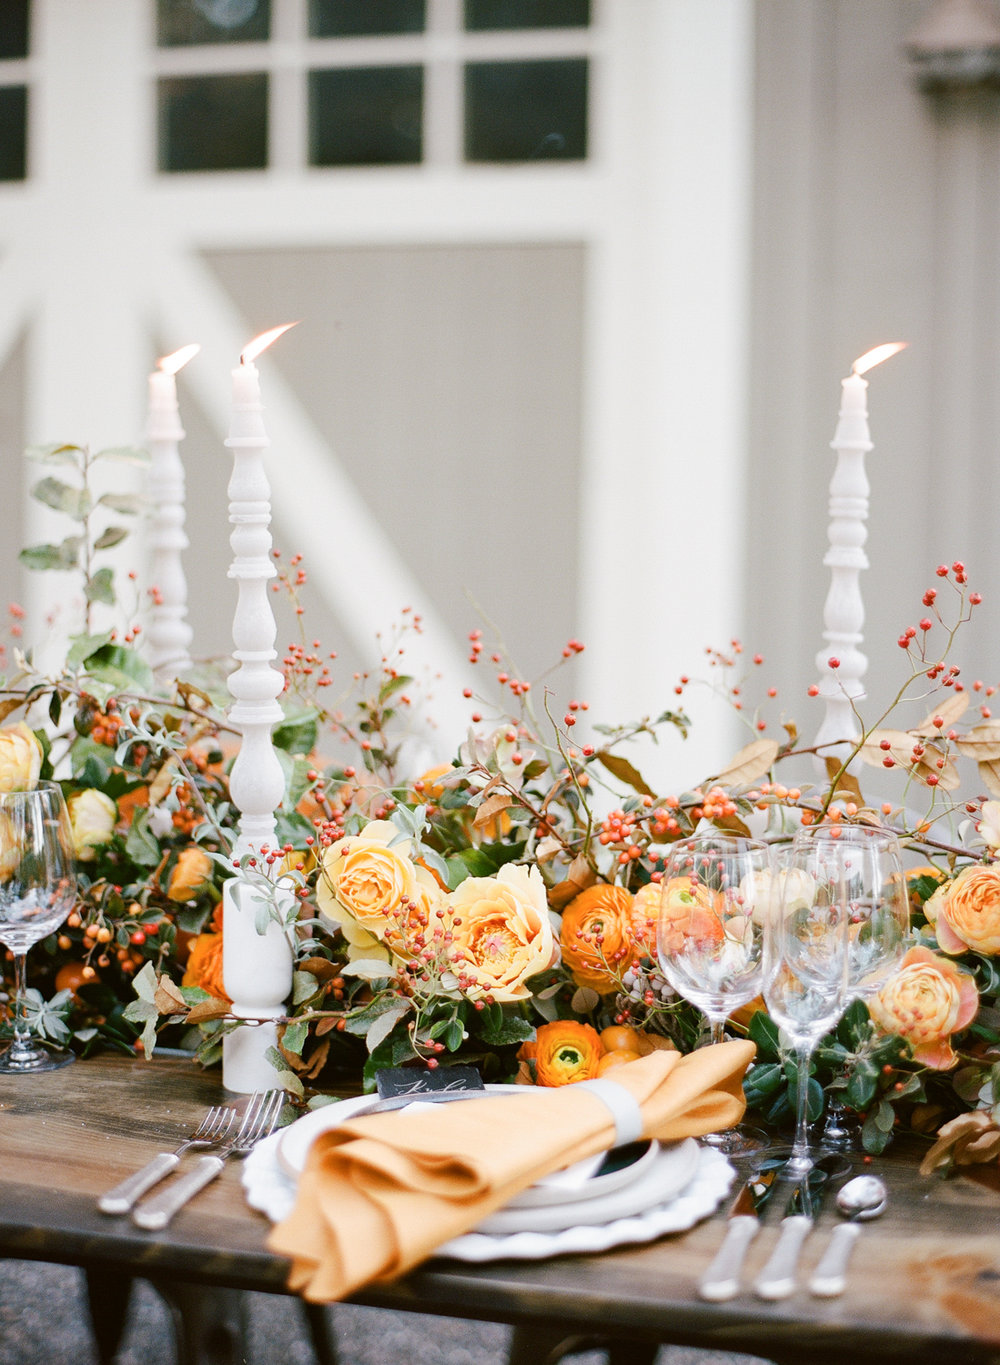 Floral table garland centerpiece of rosehip and blackberry vines, yellow peonies, and orange ranunculus; Sylvie Gil Photography